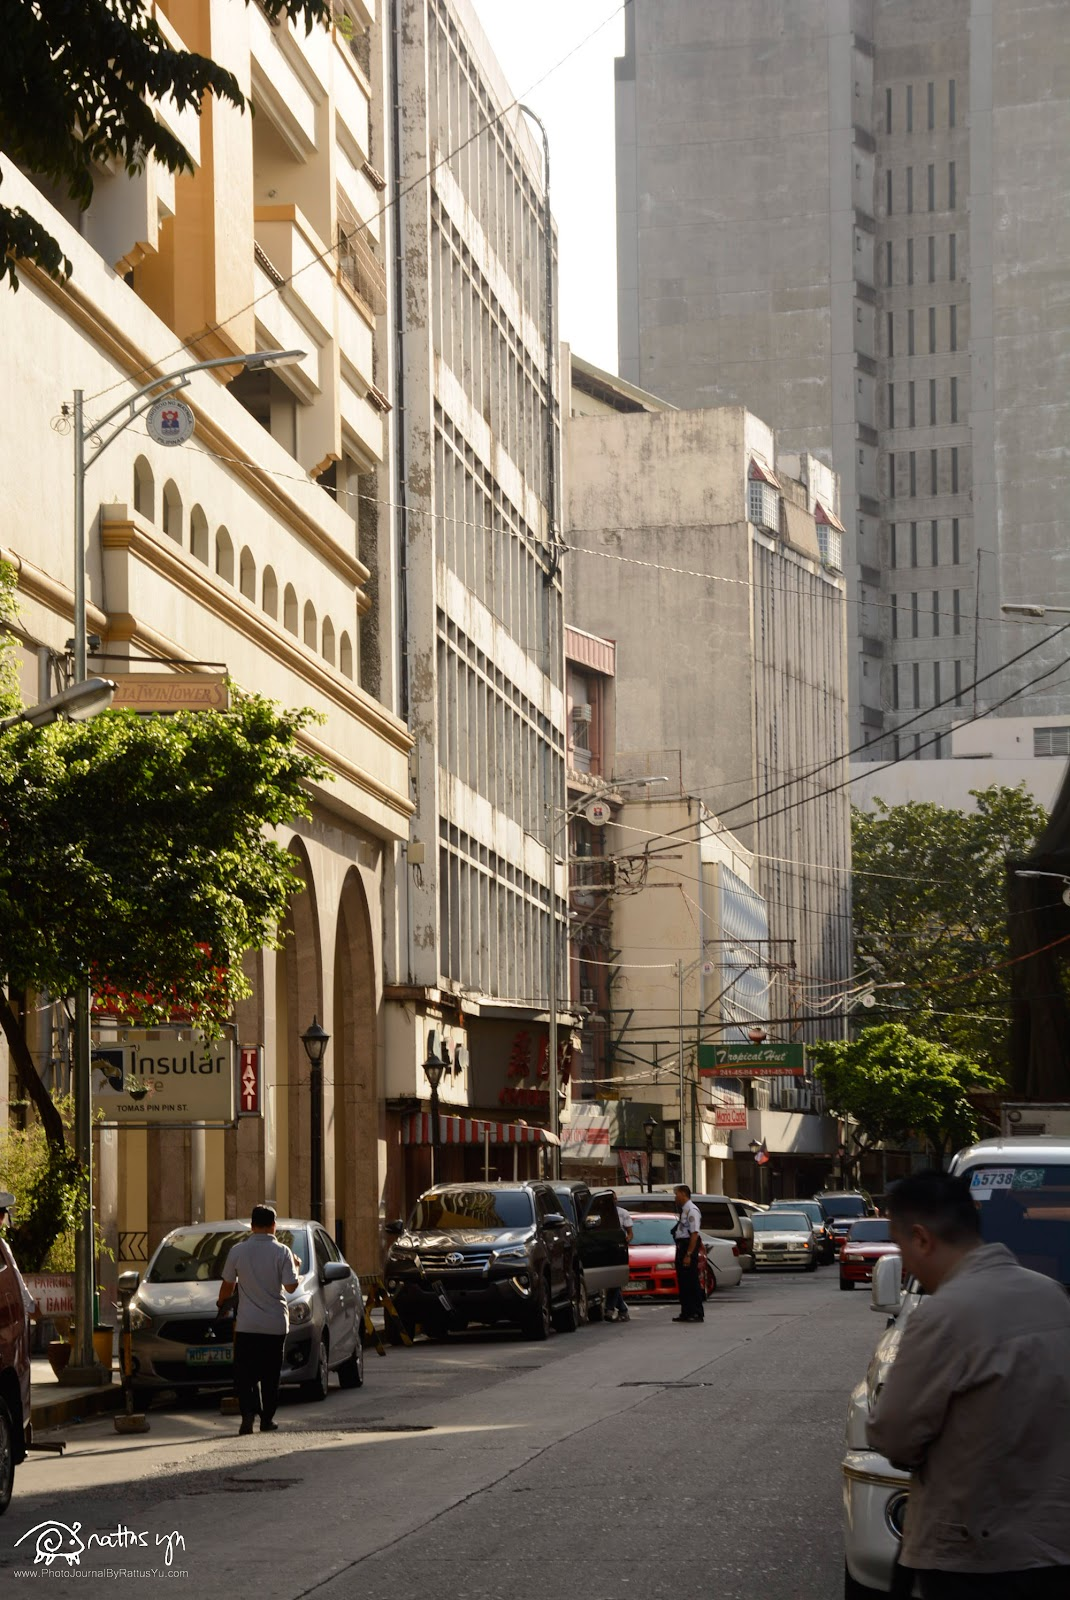 Binondo, Chinatown, Sta. Cruz, business district, Quintin Paredes Street, old buildings, photowalk